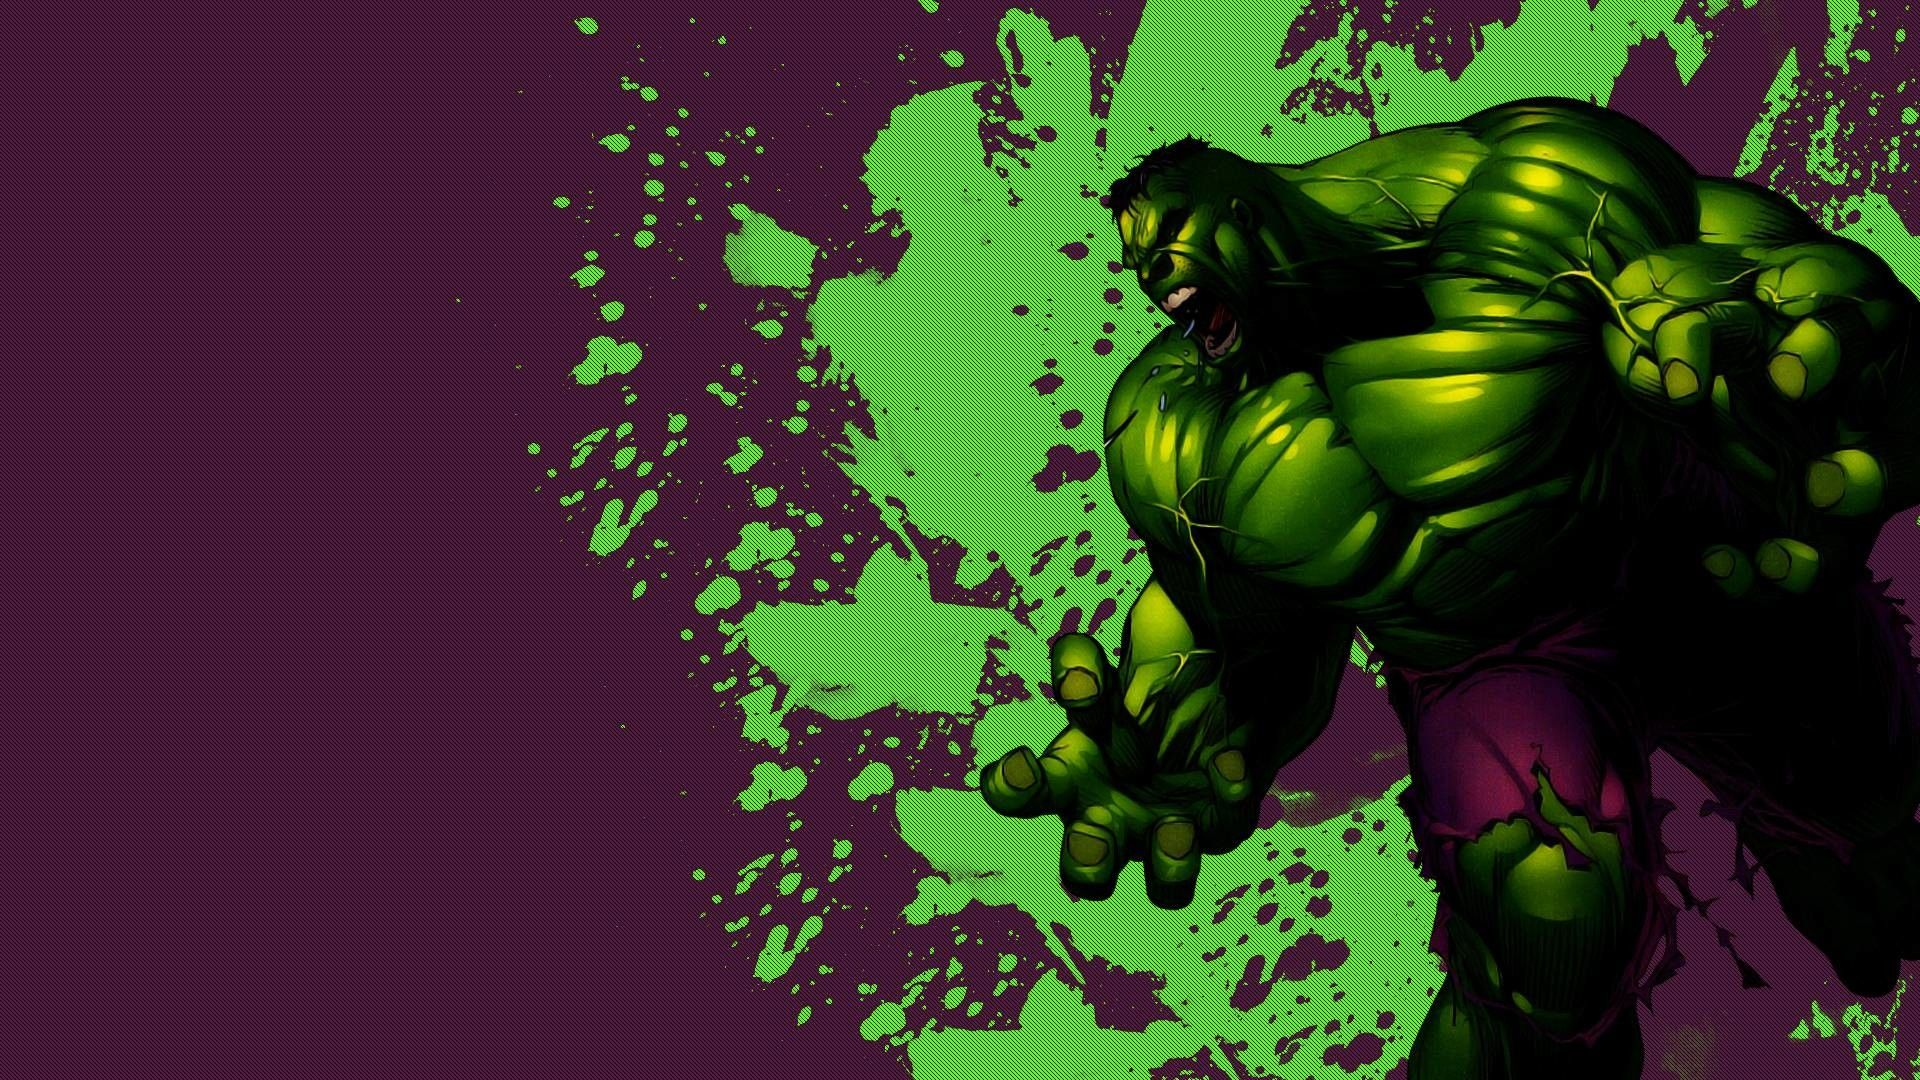 1920x1080 Dark Hulk Wallpaper Hd 6 3d Wallpaper Superhero Incredible Hulk Wallpaper Pc